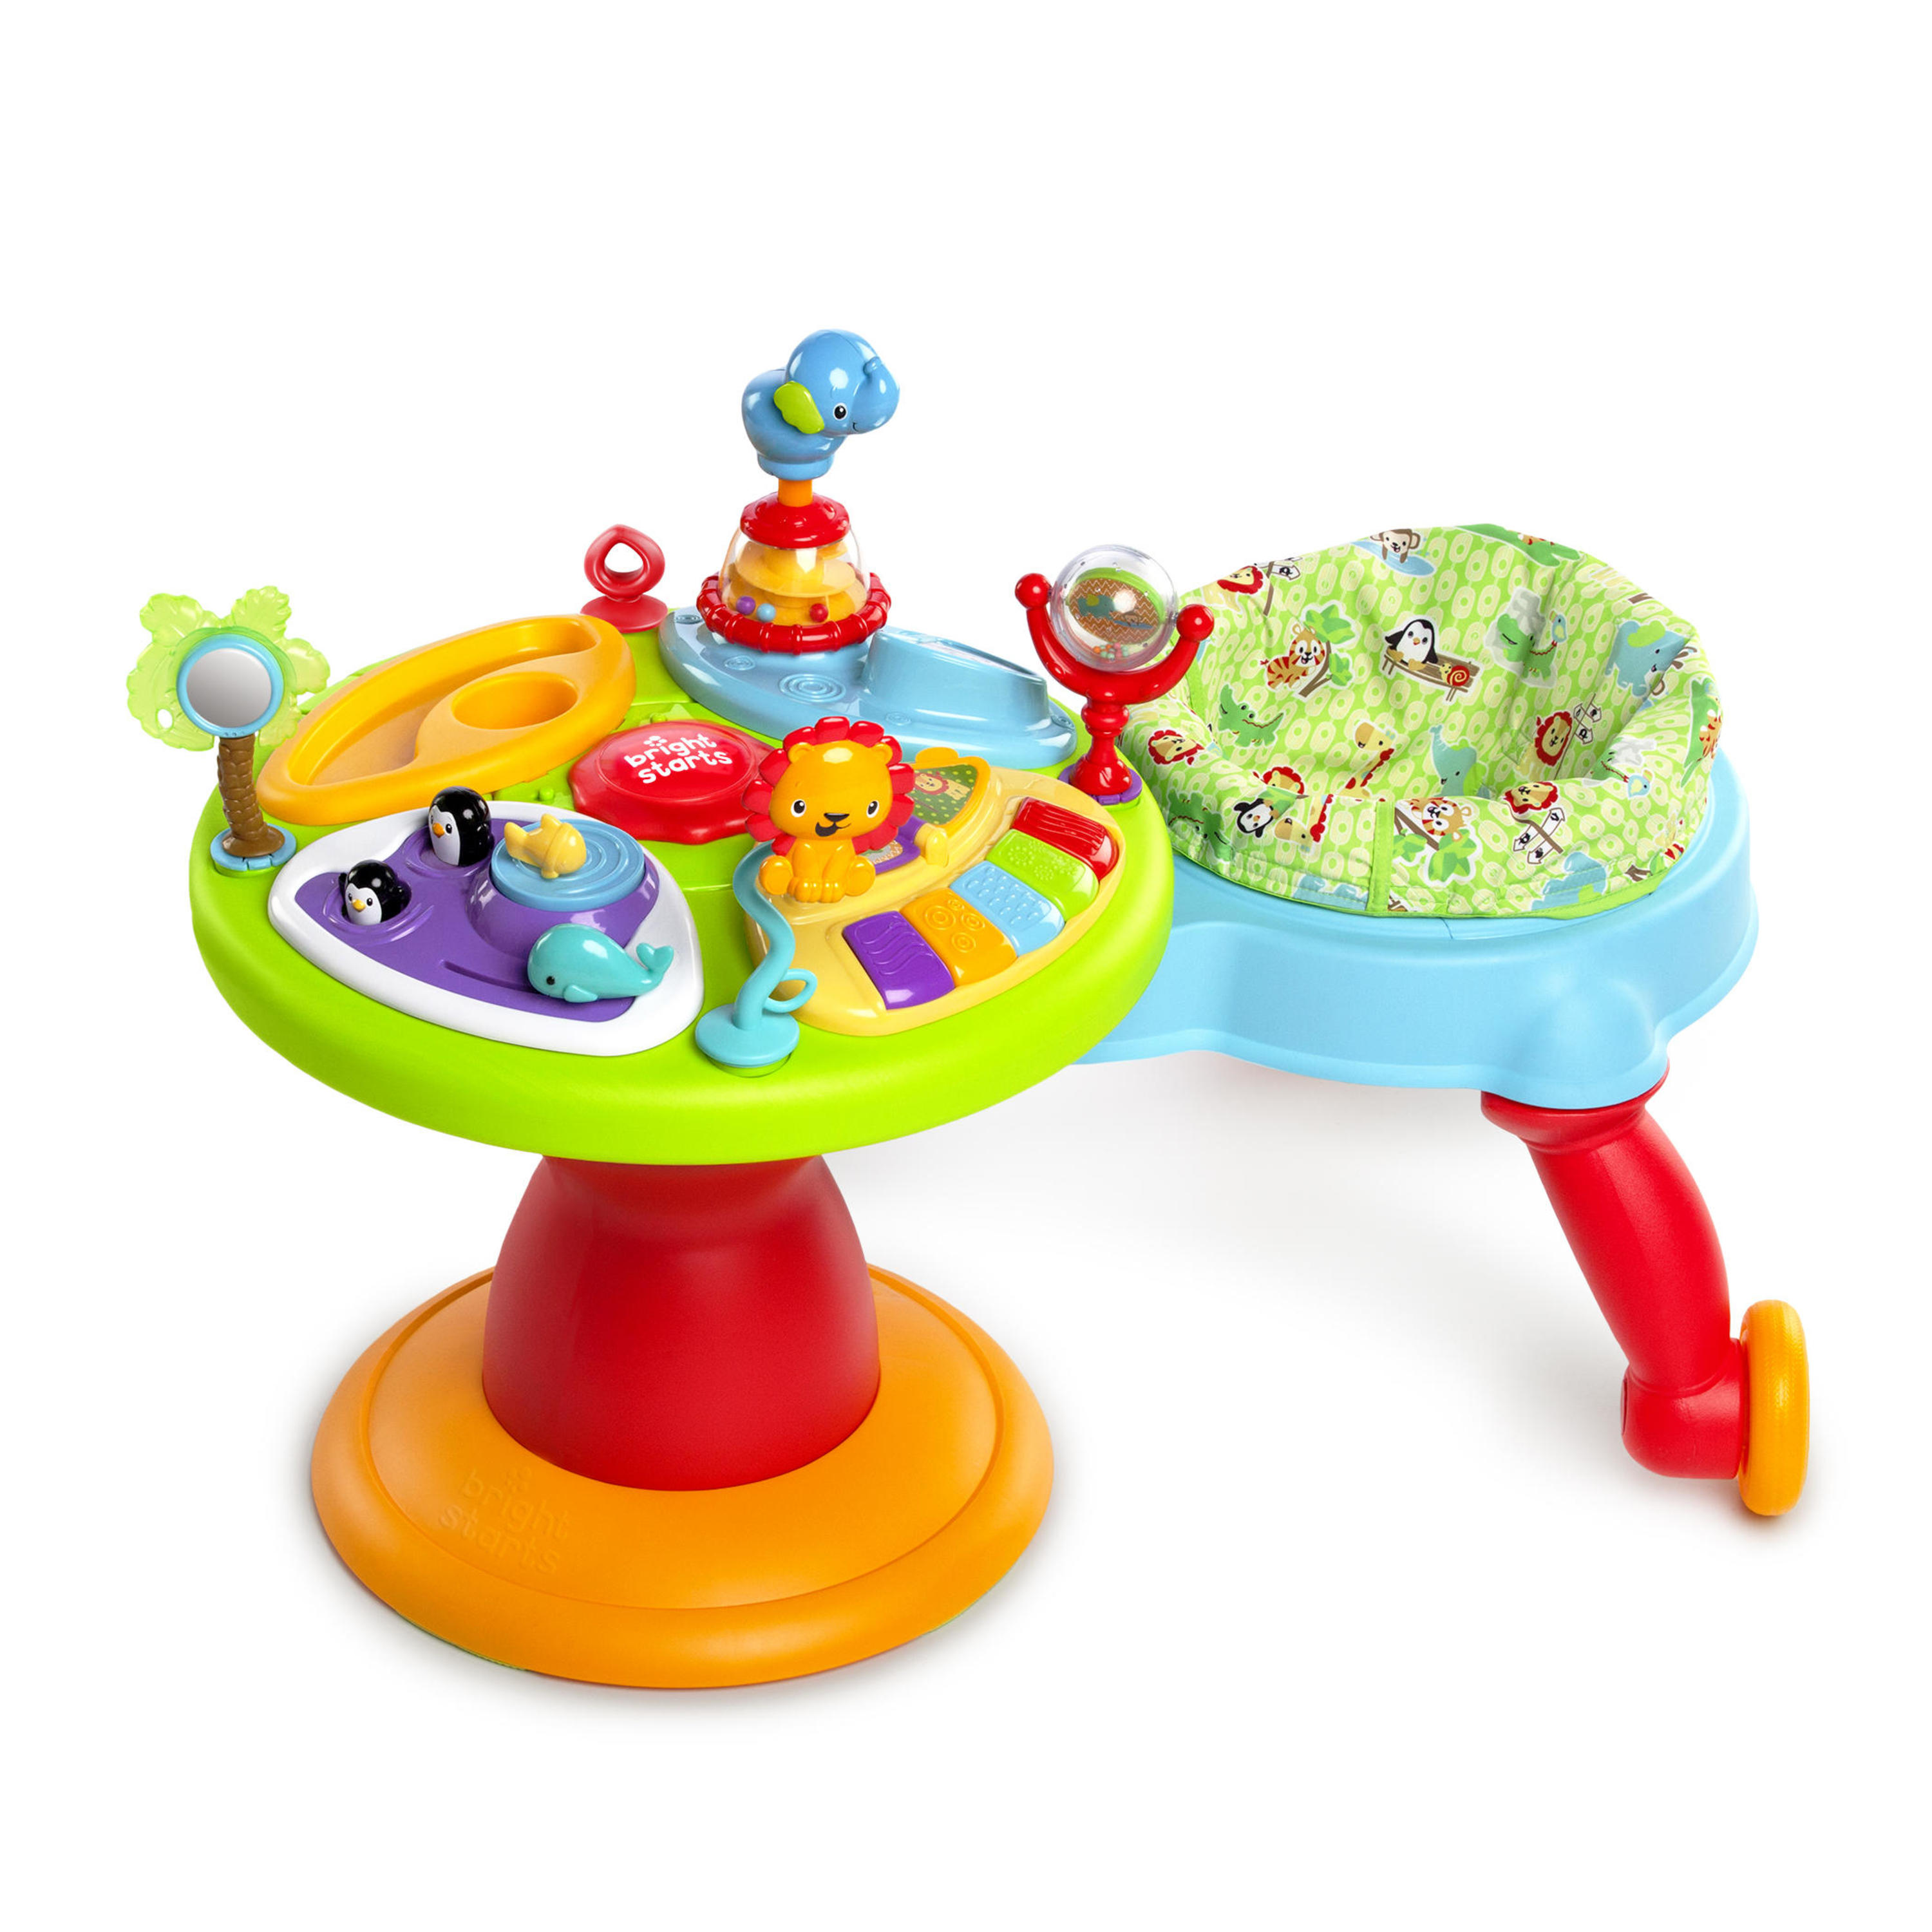 Bright Starts 3 In 1 Around We Go Activity Center by Bright Starts